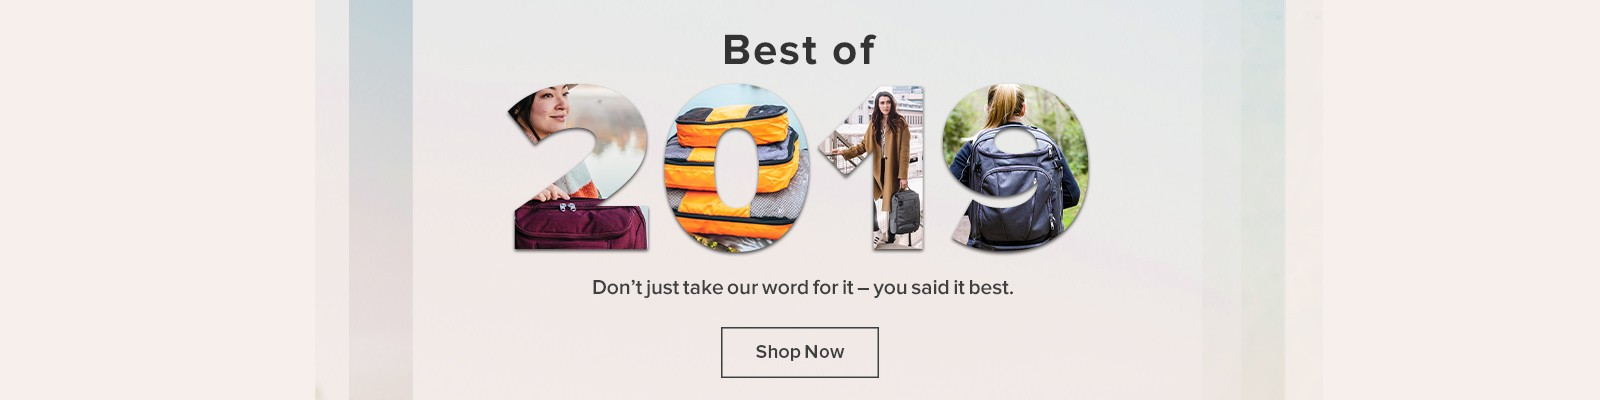 Shop Best of the Best